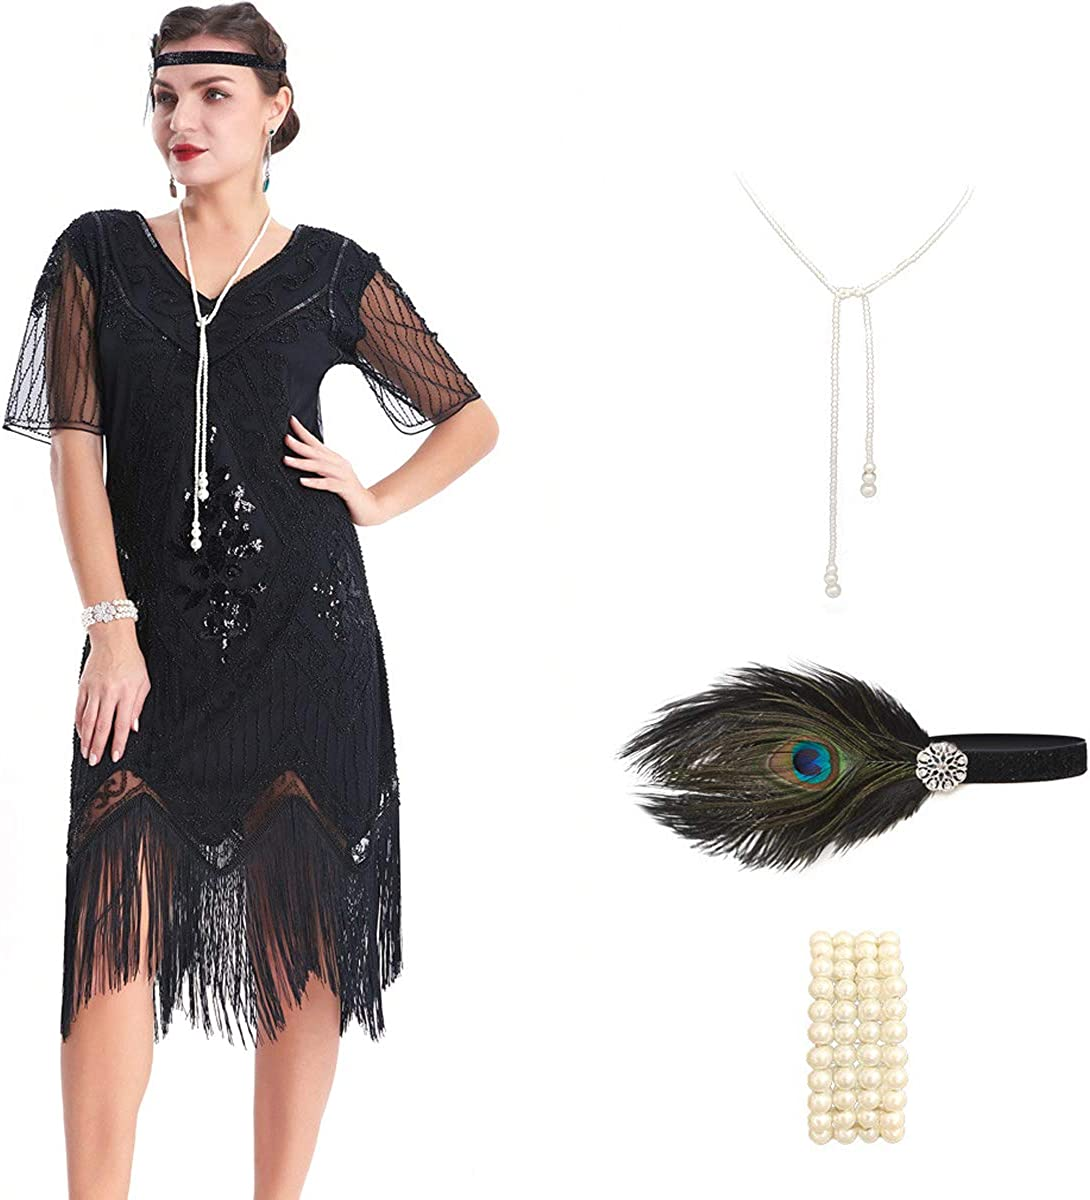 OKQ Womens 1920s Art Deco Fringed Sequin Dress 20s Cocktail Flapper Gatsby Costume Dress with 20s Accessories Set 18